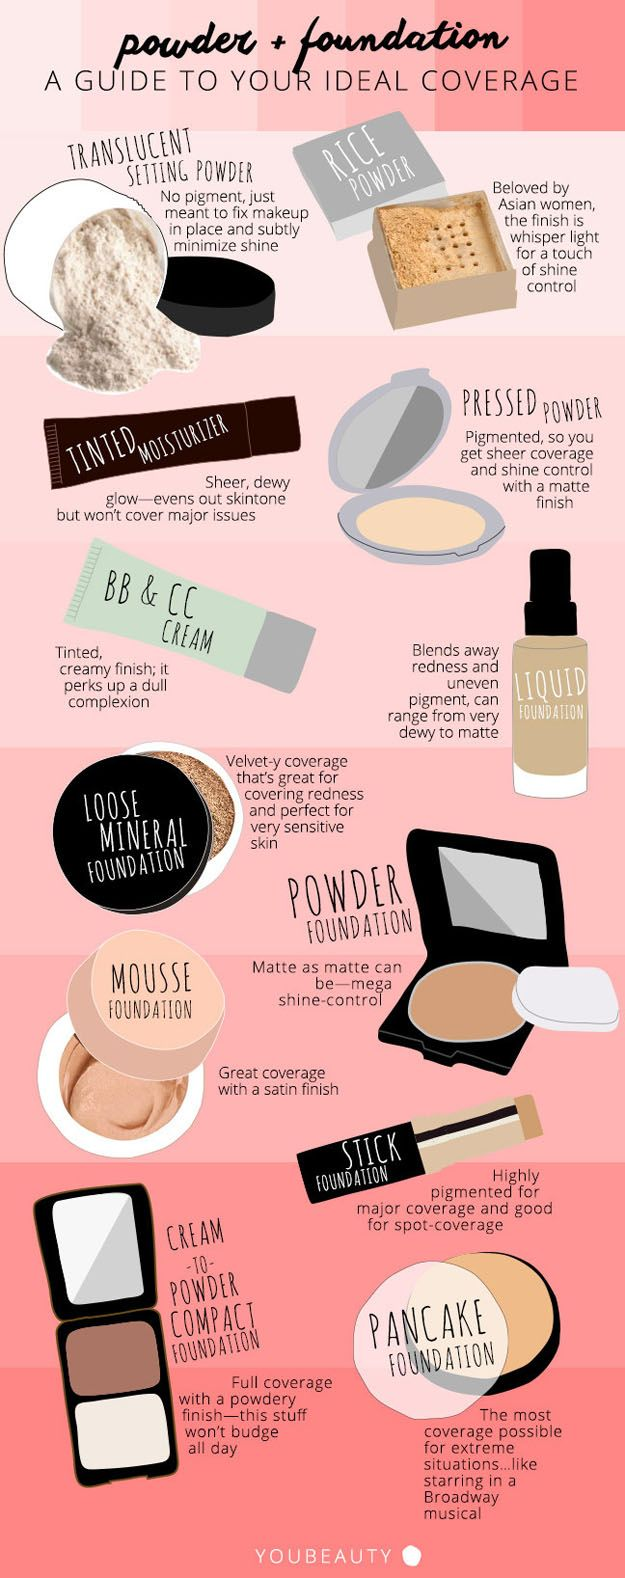 Makeup Tutorial for a Flawless Finish by Makeup Tutorials at http://makeuptutorials.com/makeup-tutorials-beauty-tips